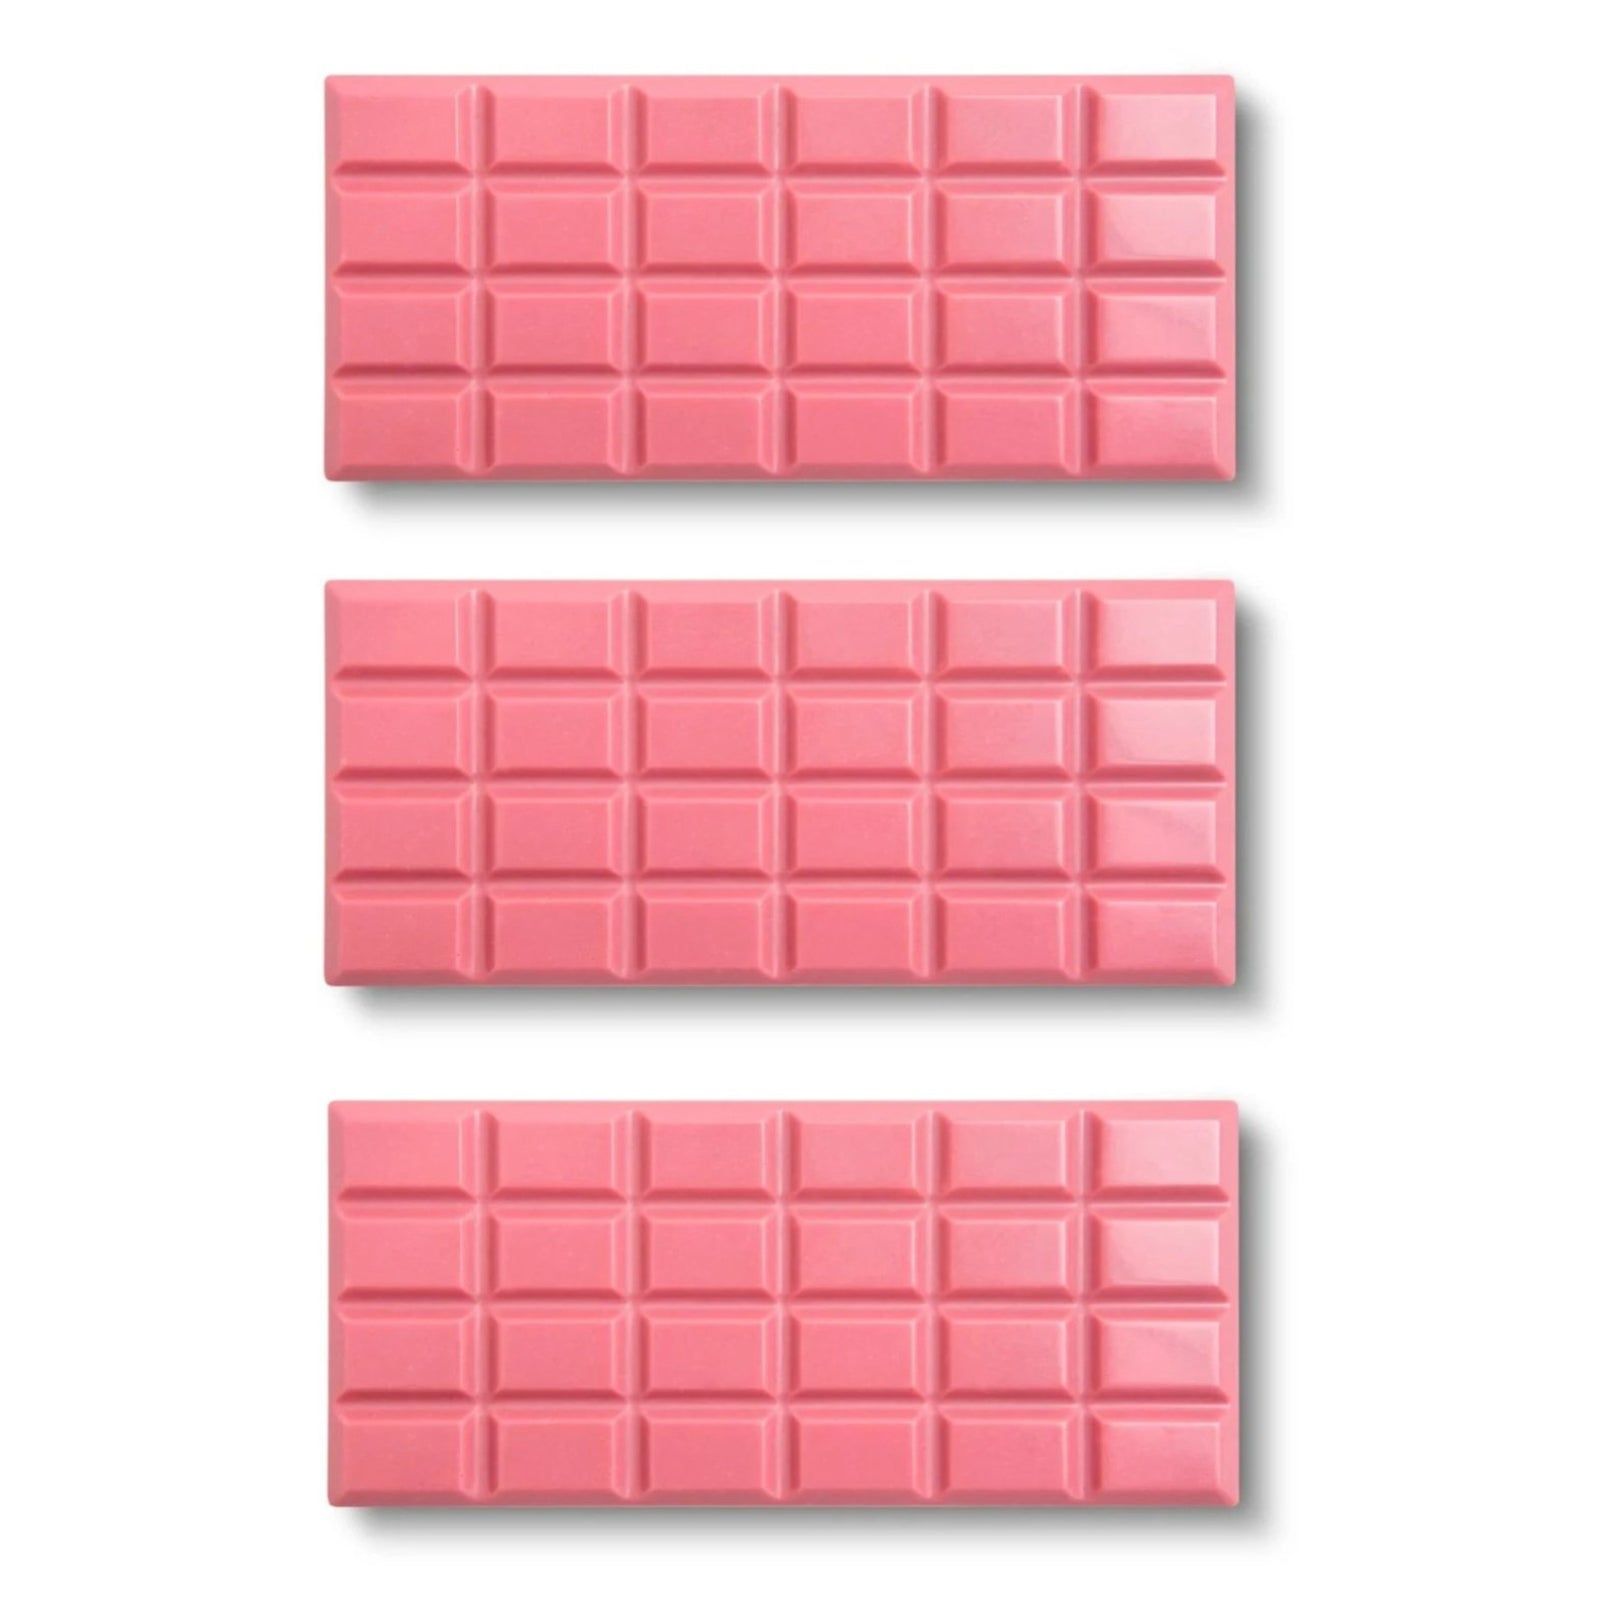 Belgian Ruby Chocolate, 6-Set (2 Each) - Flair Chocolatier